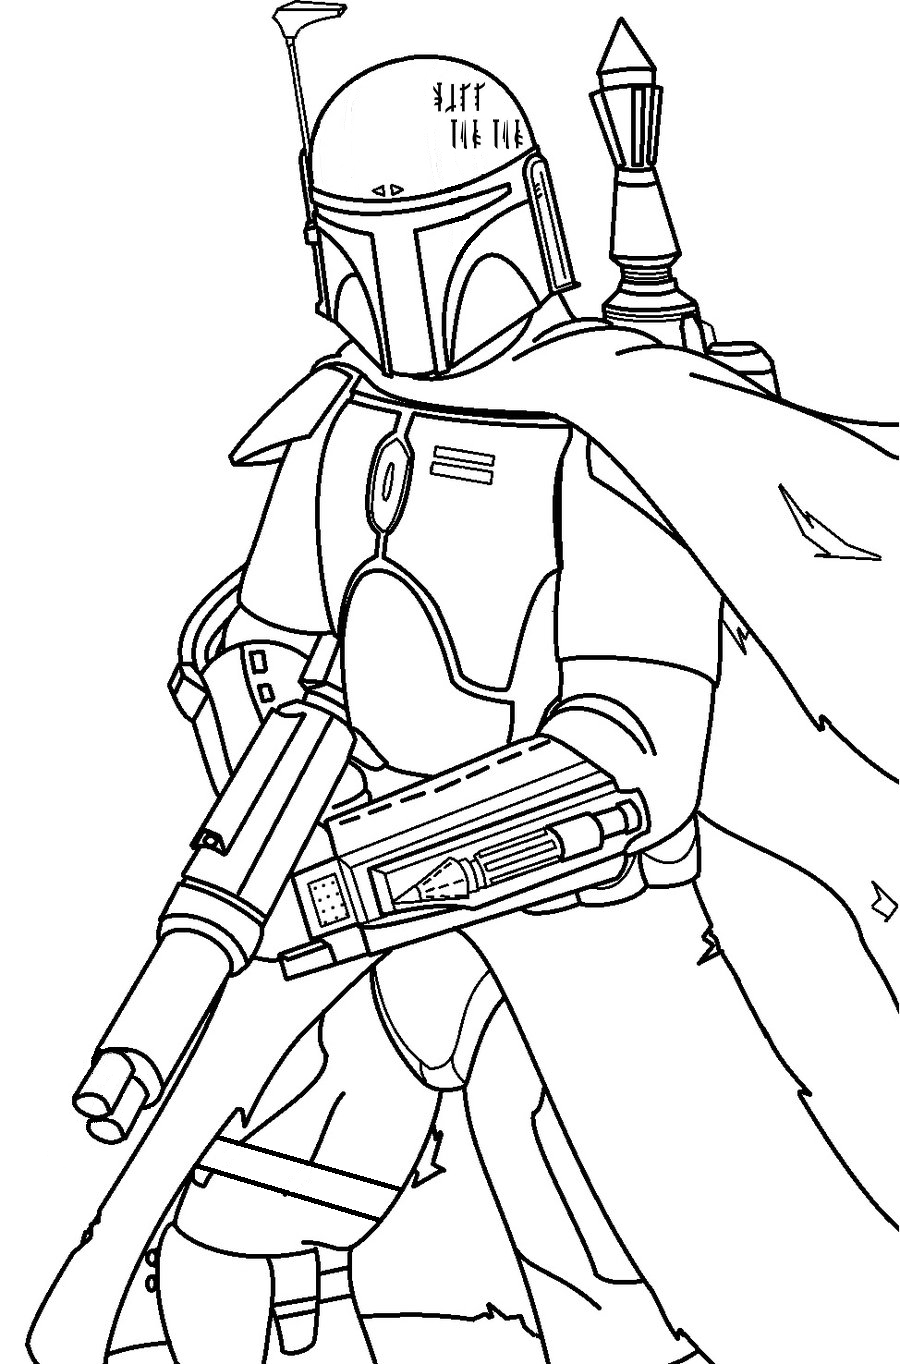 star wars drawingszachary holverson on mandalorian